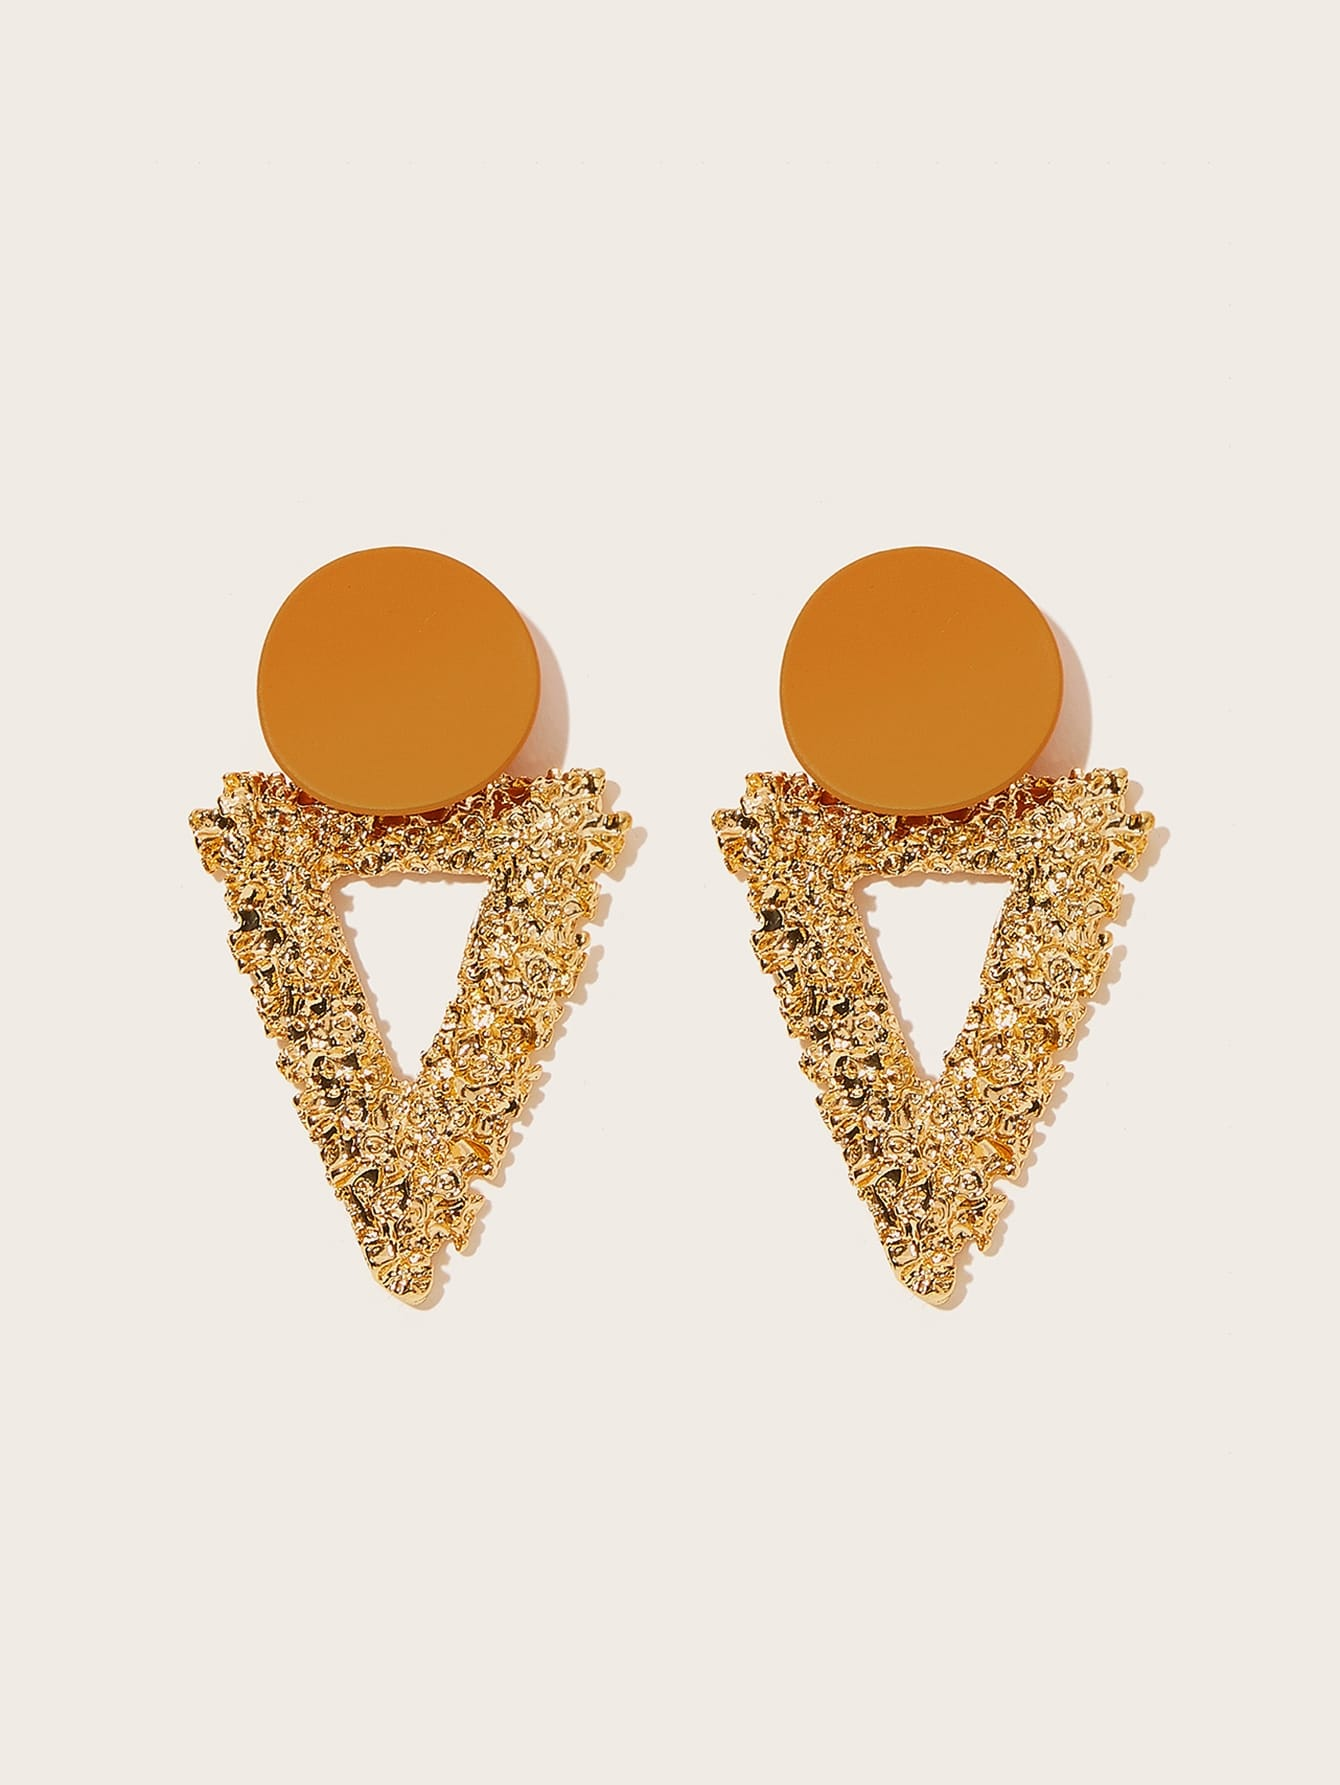 Desi Round & Textured Triangle Drop Earrings 1pair - BrandsGuru